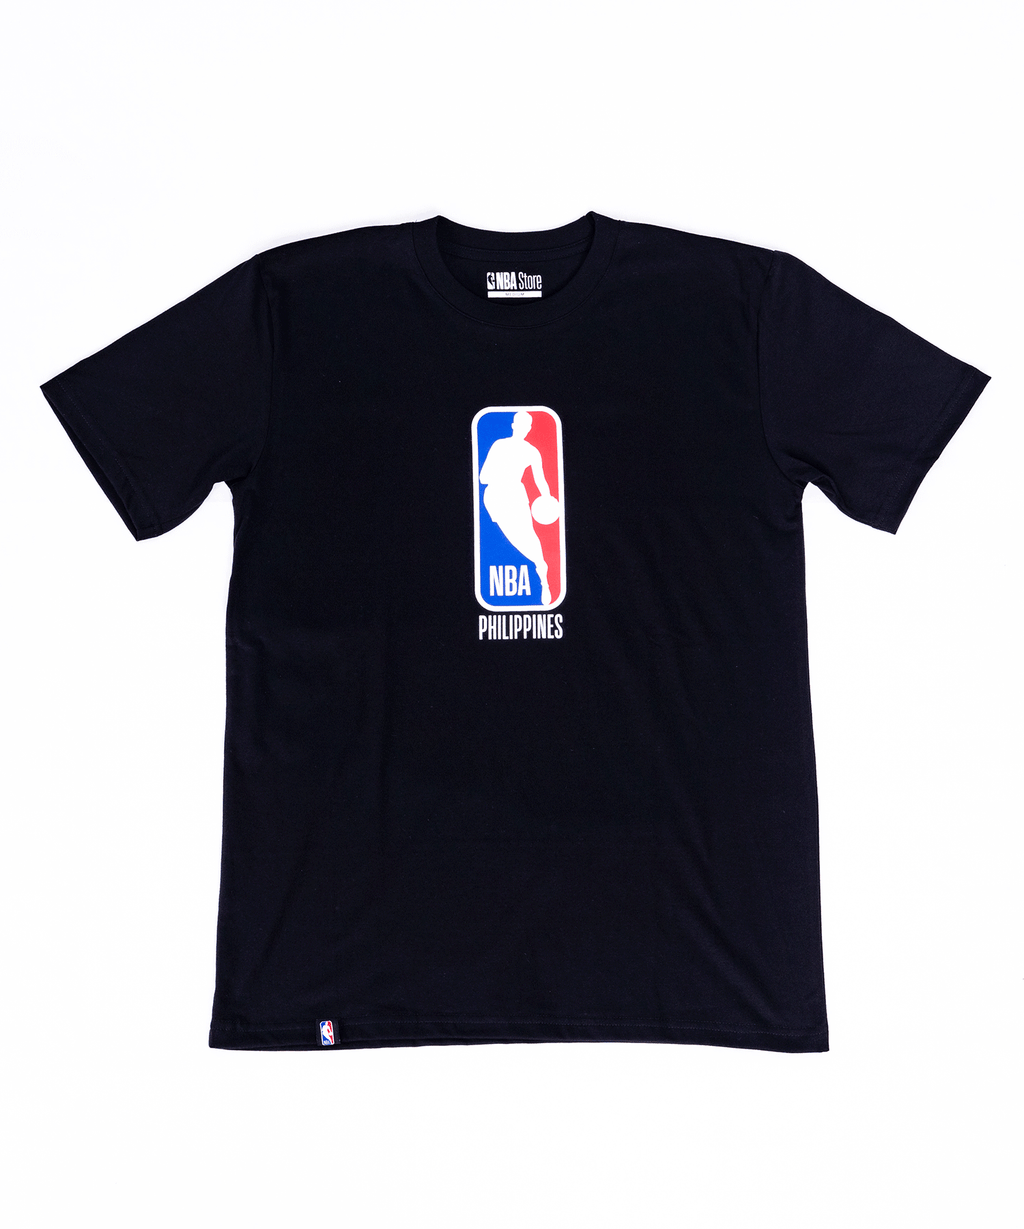 NBA Philippines Logoman Tee - Black